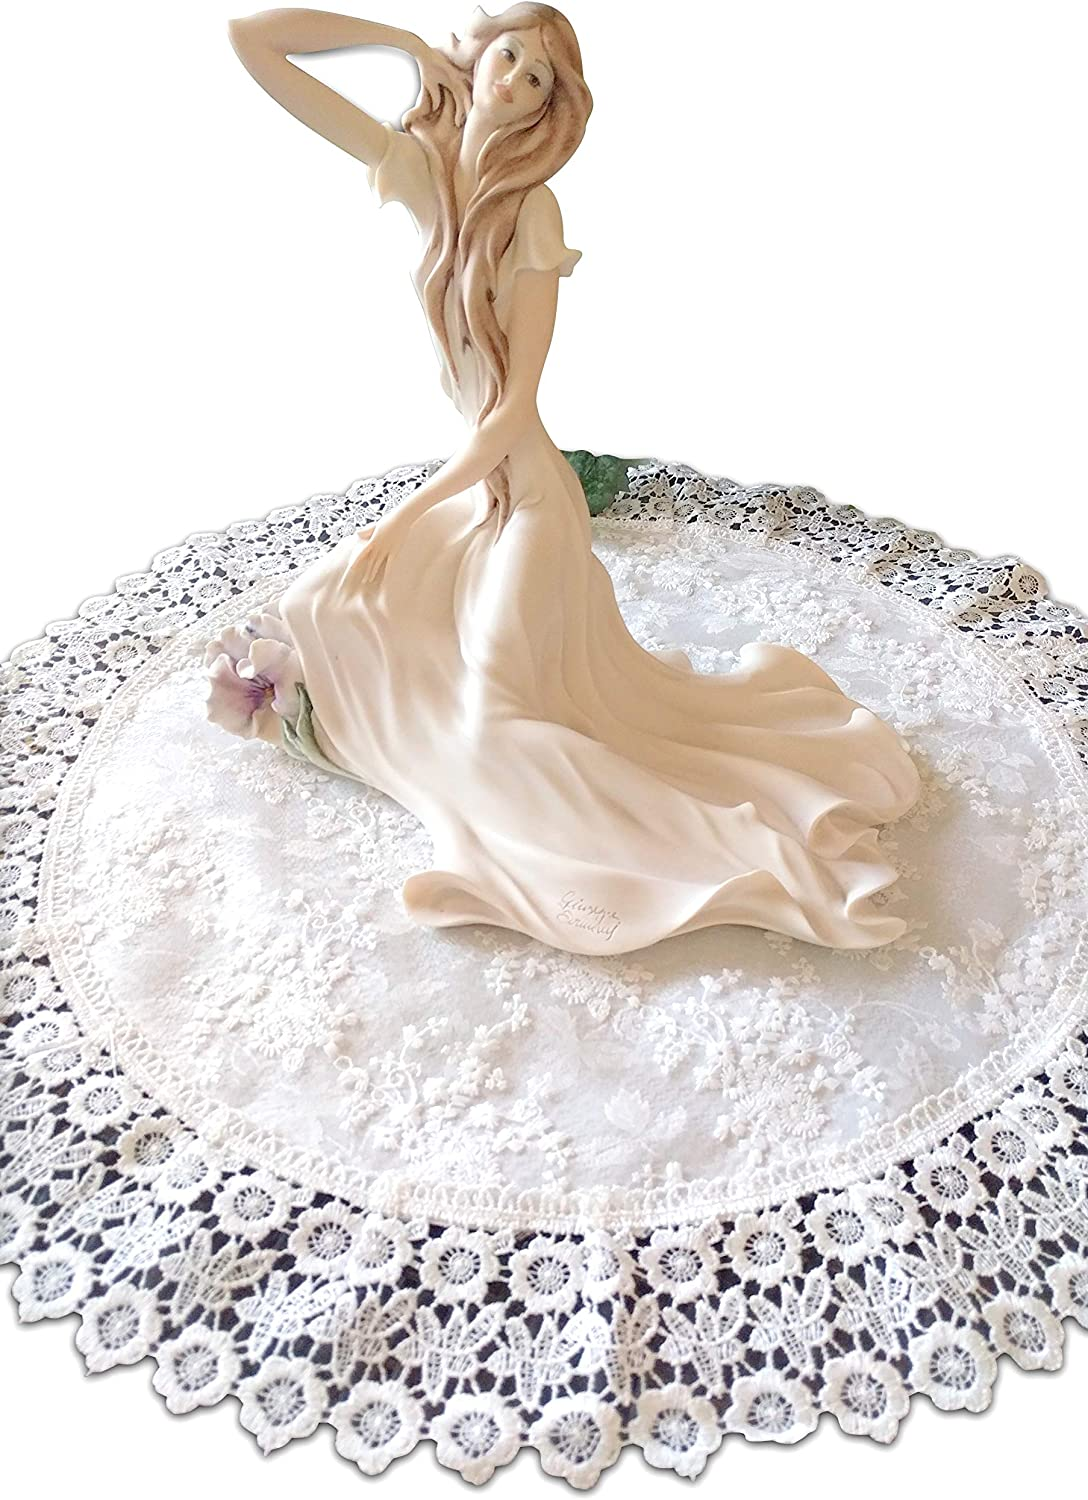 Galleria di Giovanni Doily Large 24 Inch Ivory Princess Round Lace European Dresser Table Scarf Topper